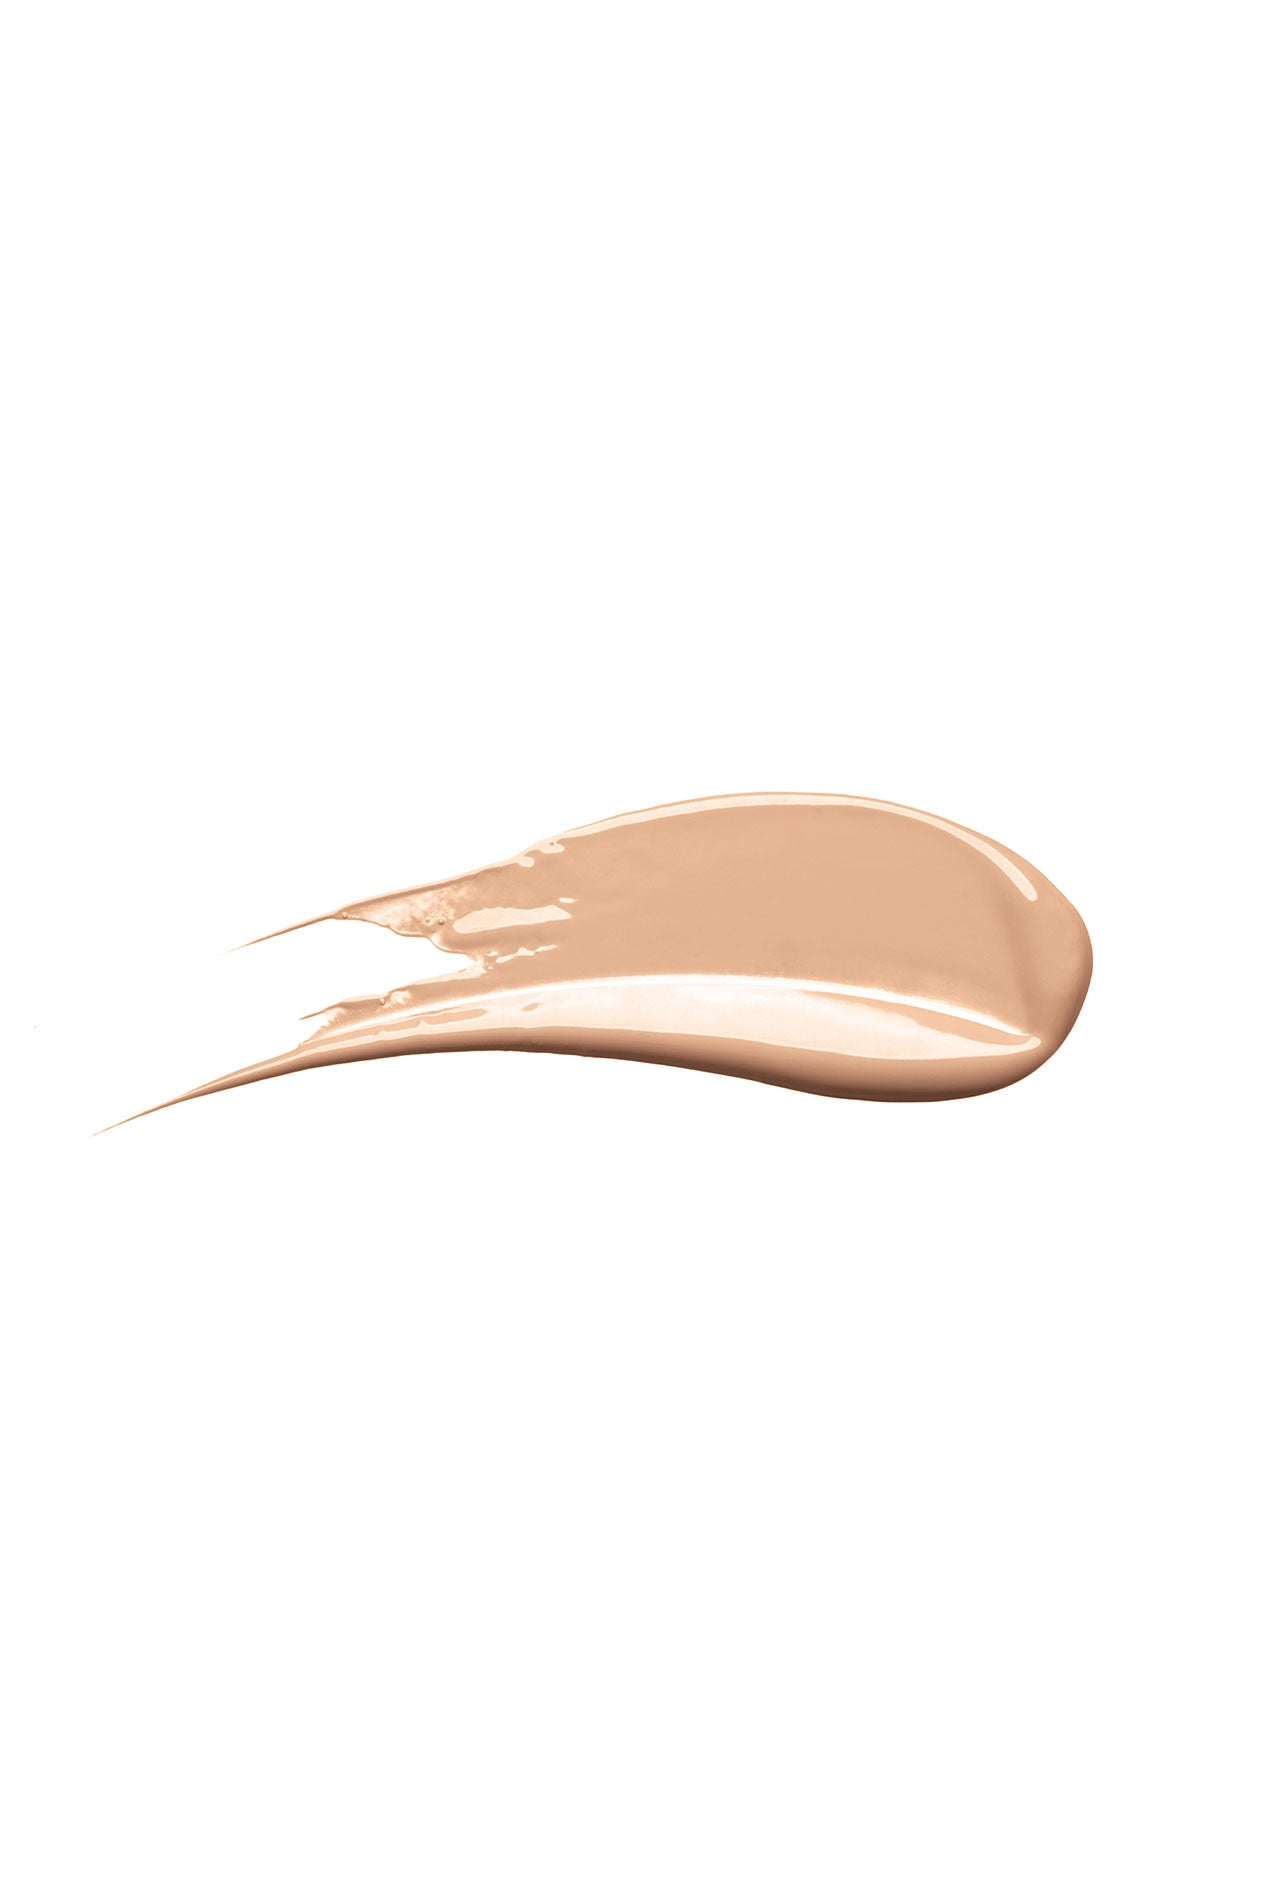 Satin Cream Foundation